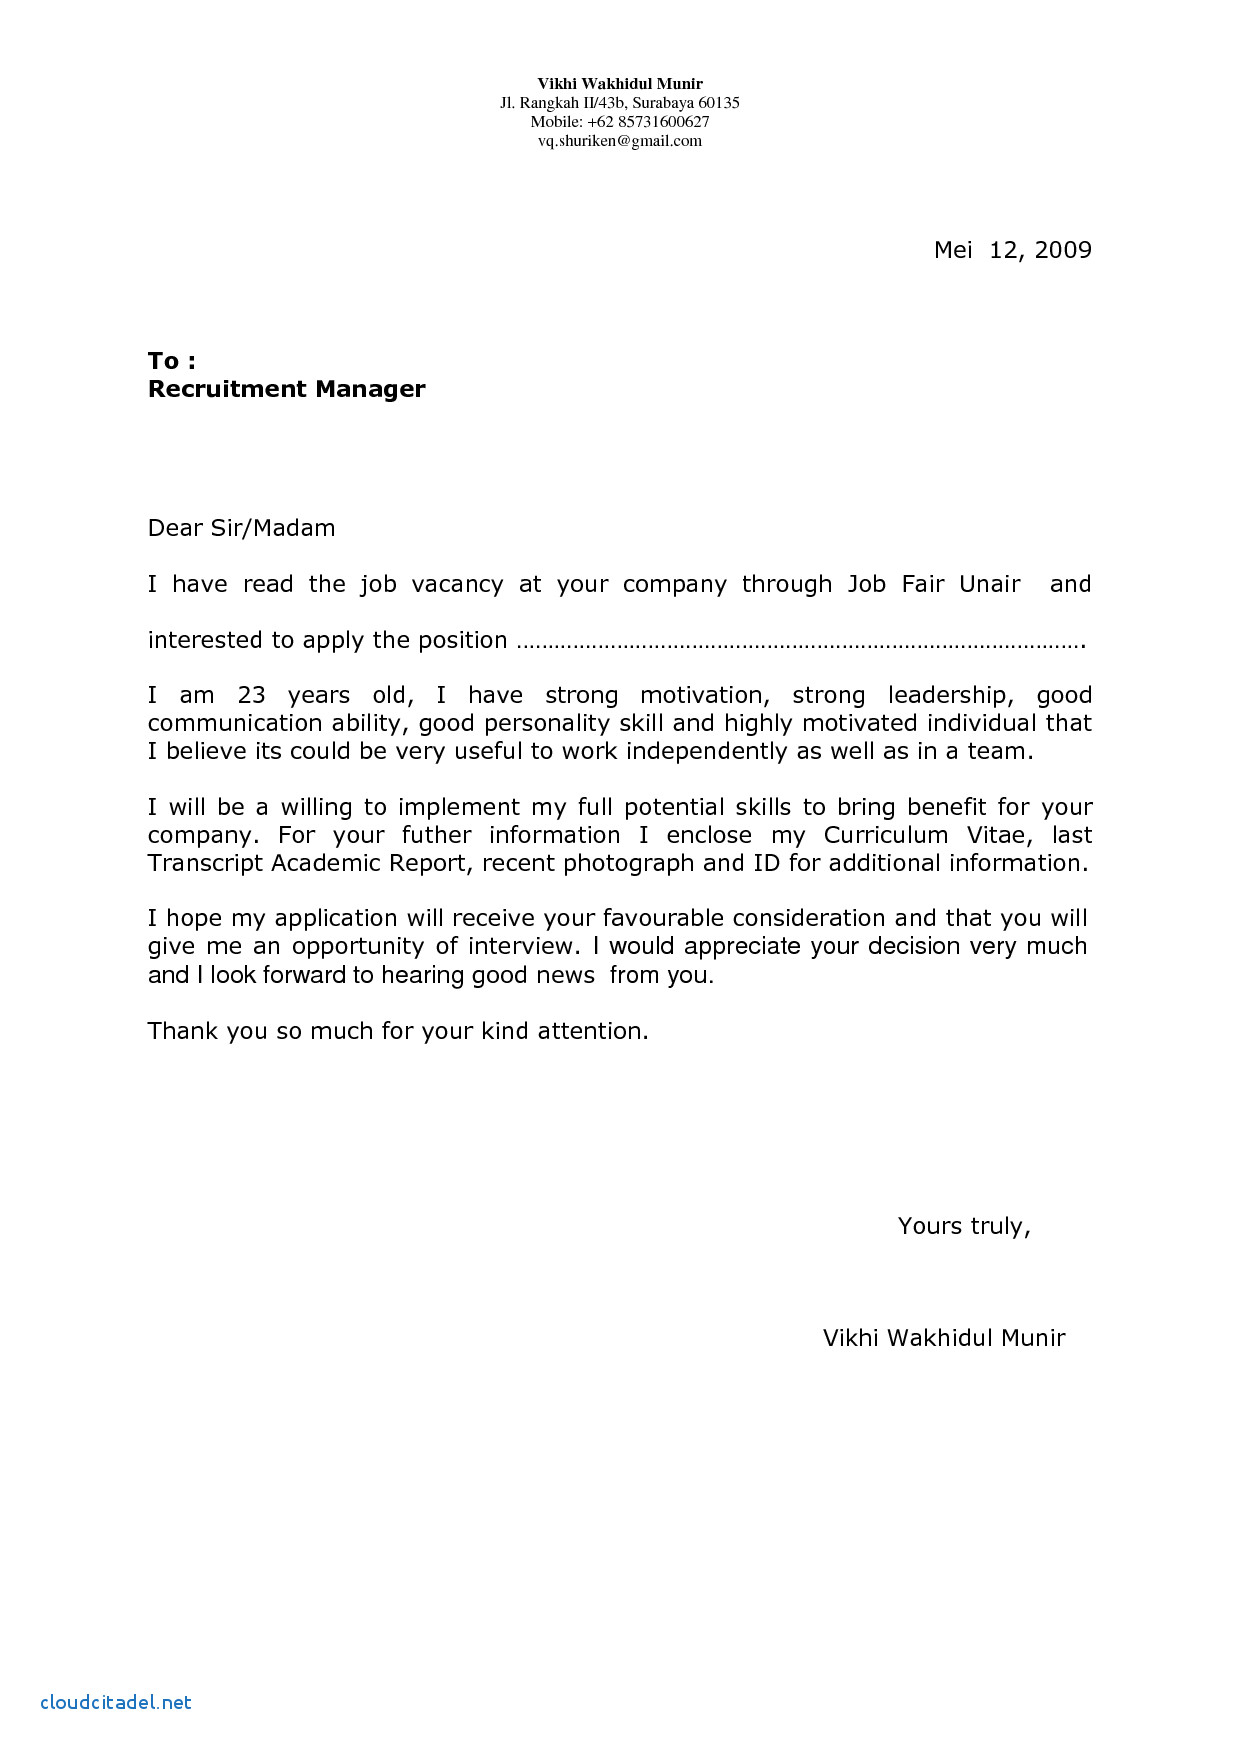 Free Letter Of Intent for A Job Template - Elegant Application Letter Sample for Teacher Position Openings